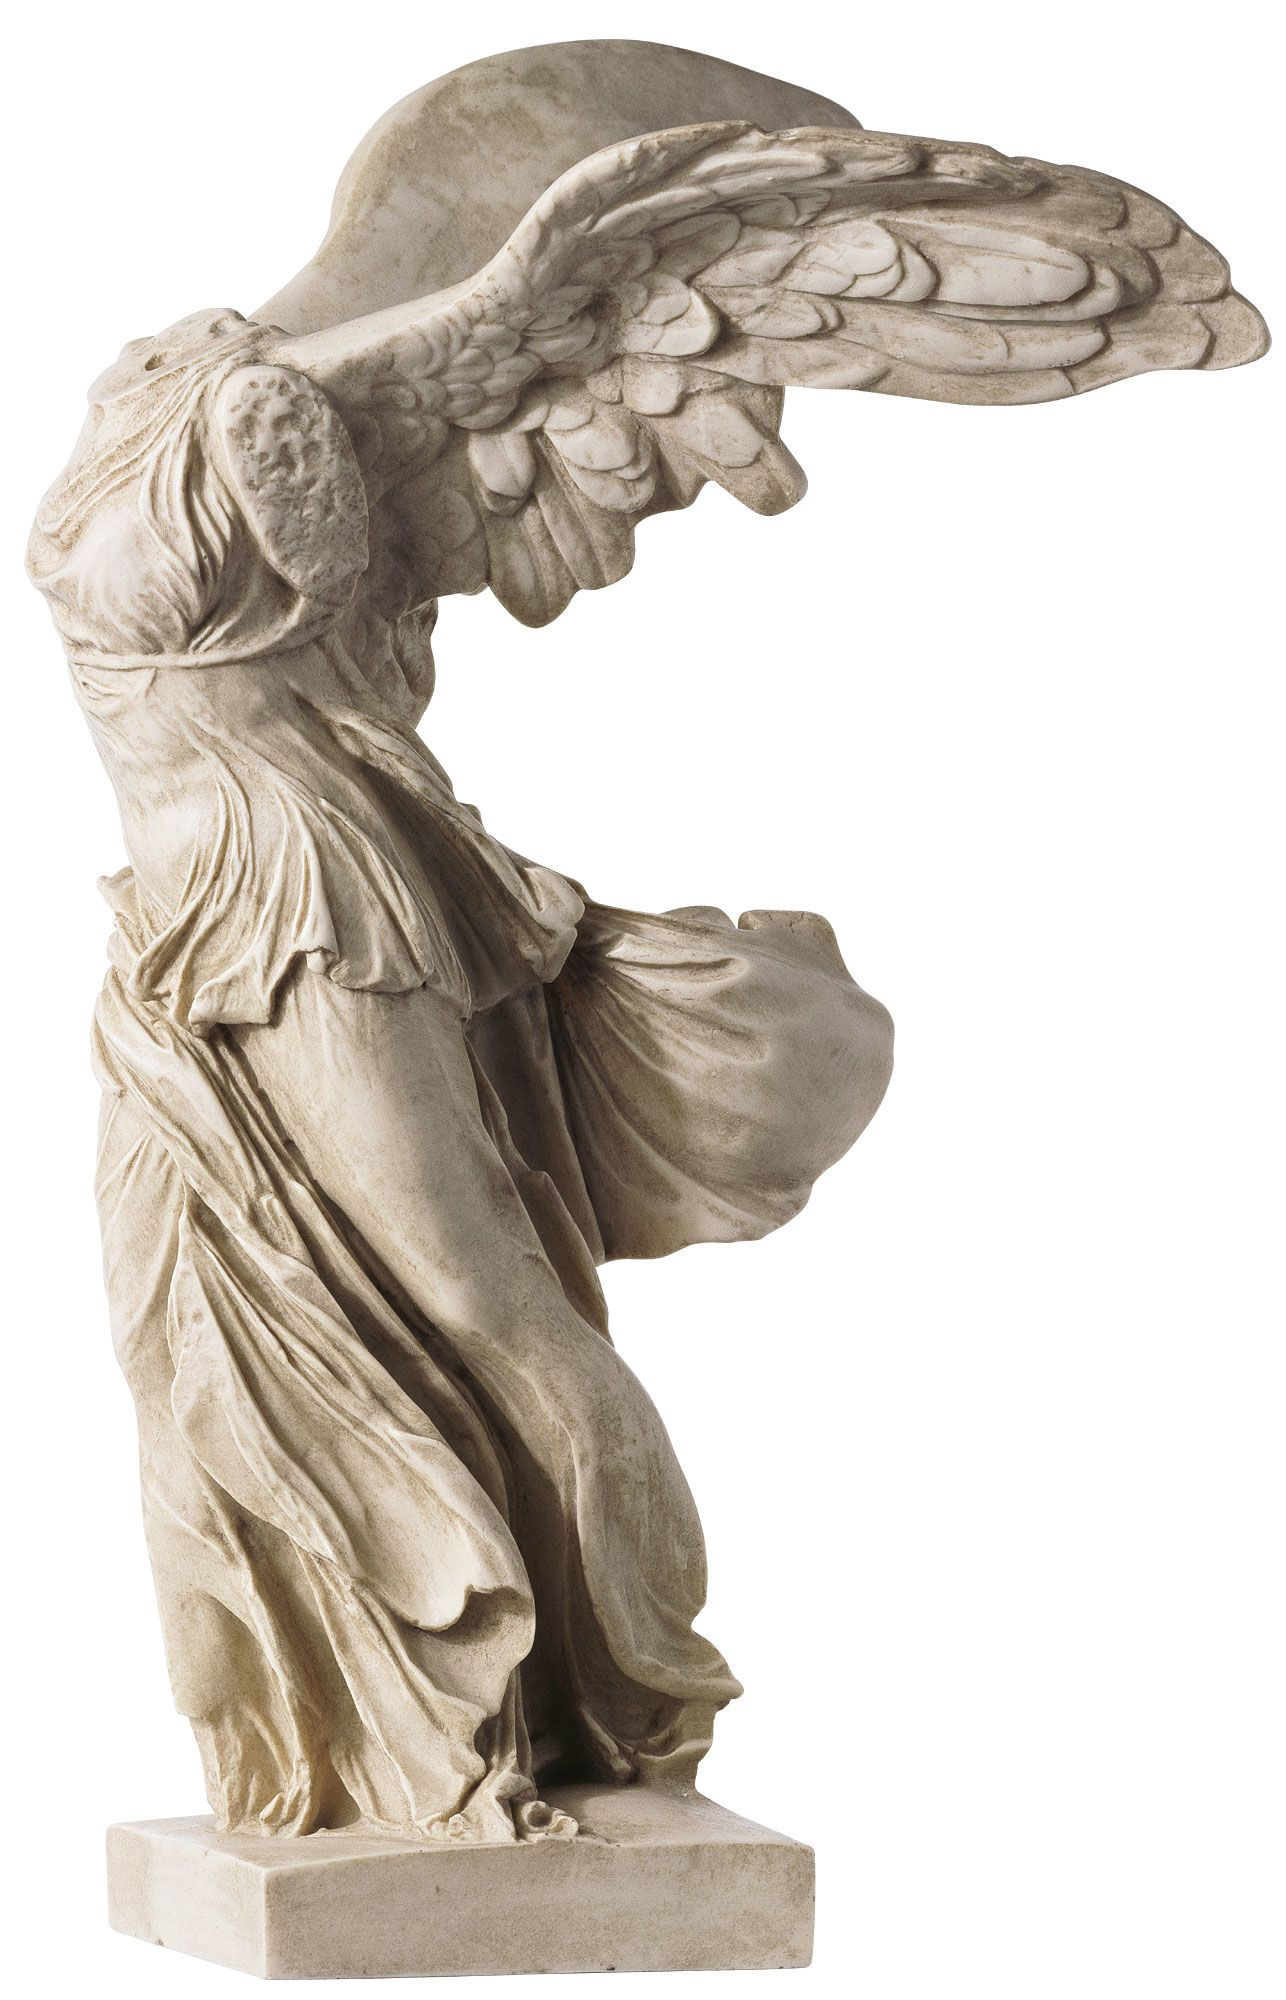 The Winged Victory of Samothrace, also called the Nike ofSamothrace, is a  2nd century. Roman SculptureArt ...